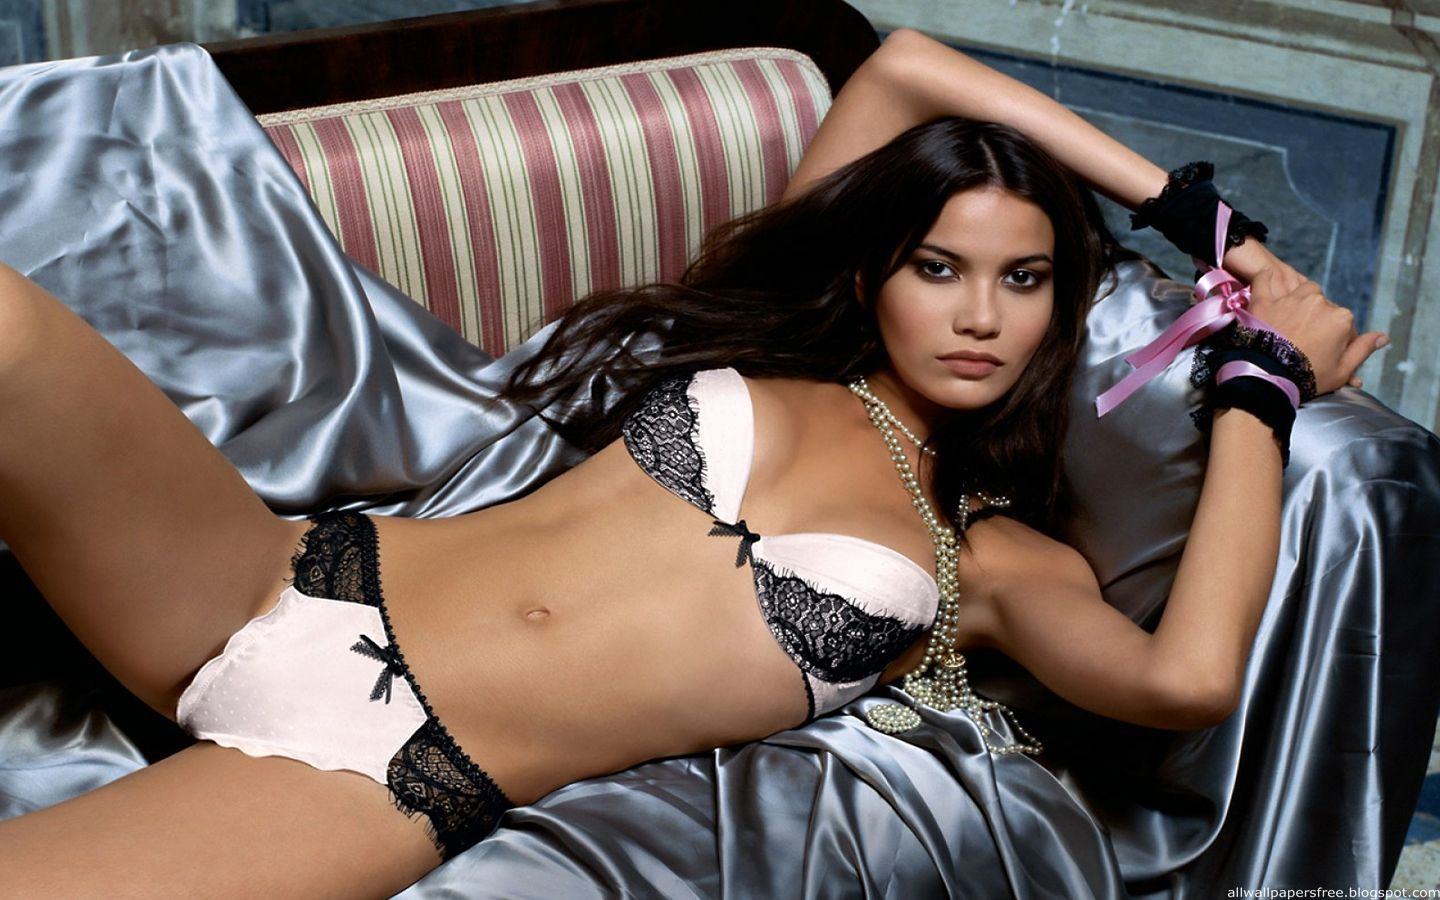 woman lingerie brunettes HD Wallpaper